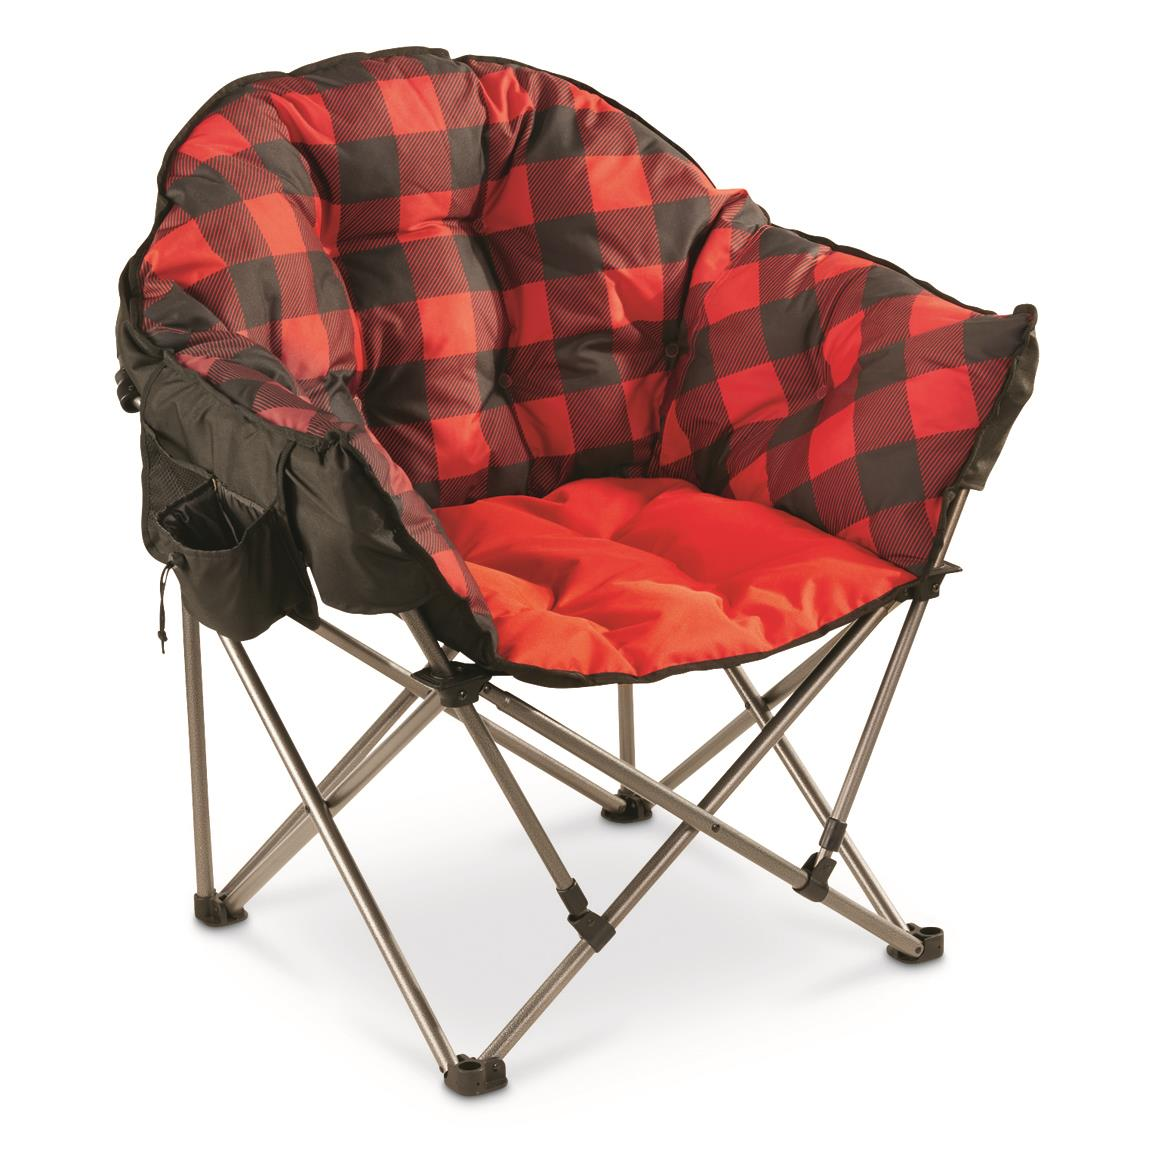 Campfire Chairs Guide Gear Oversized Club Camp Chair 500 Lb Capacity